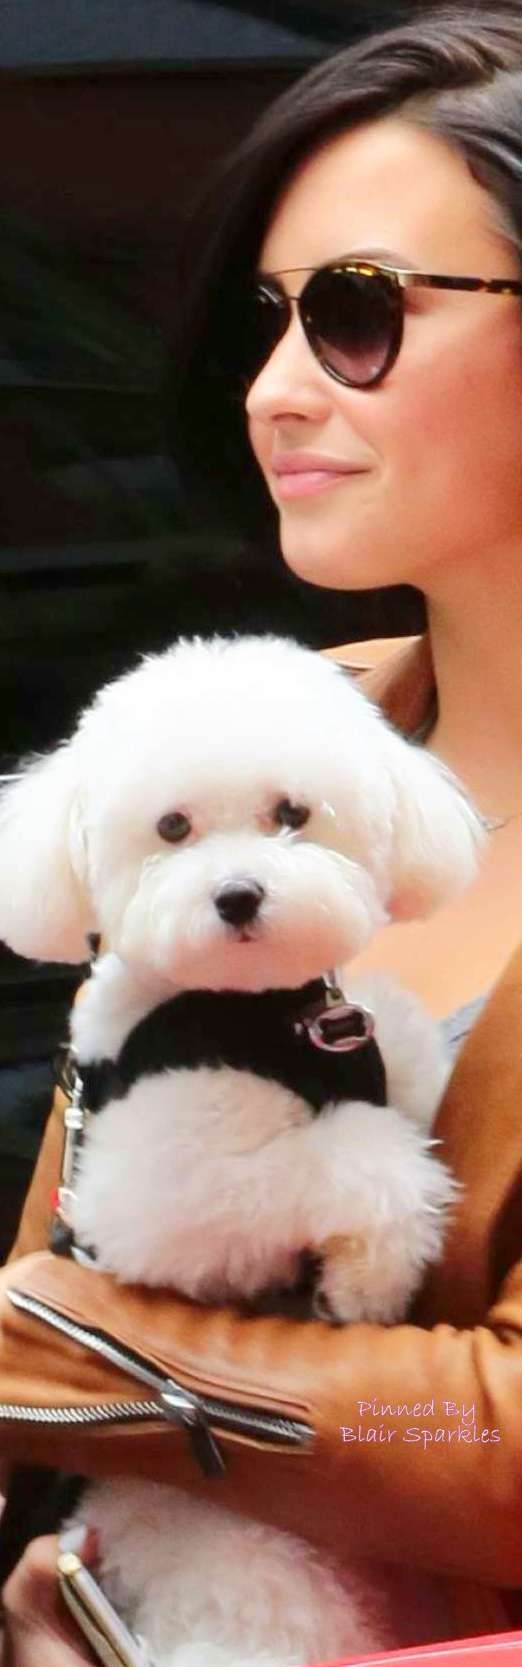 Best Bichon Frise Images On Pinterest Dogs Smile And Babies - Cute portraits baby and rescue dog